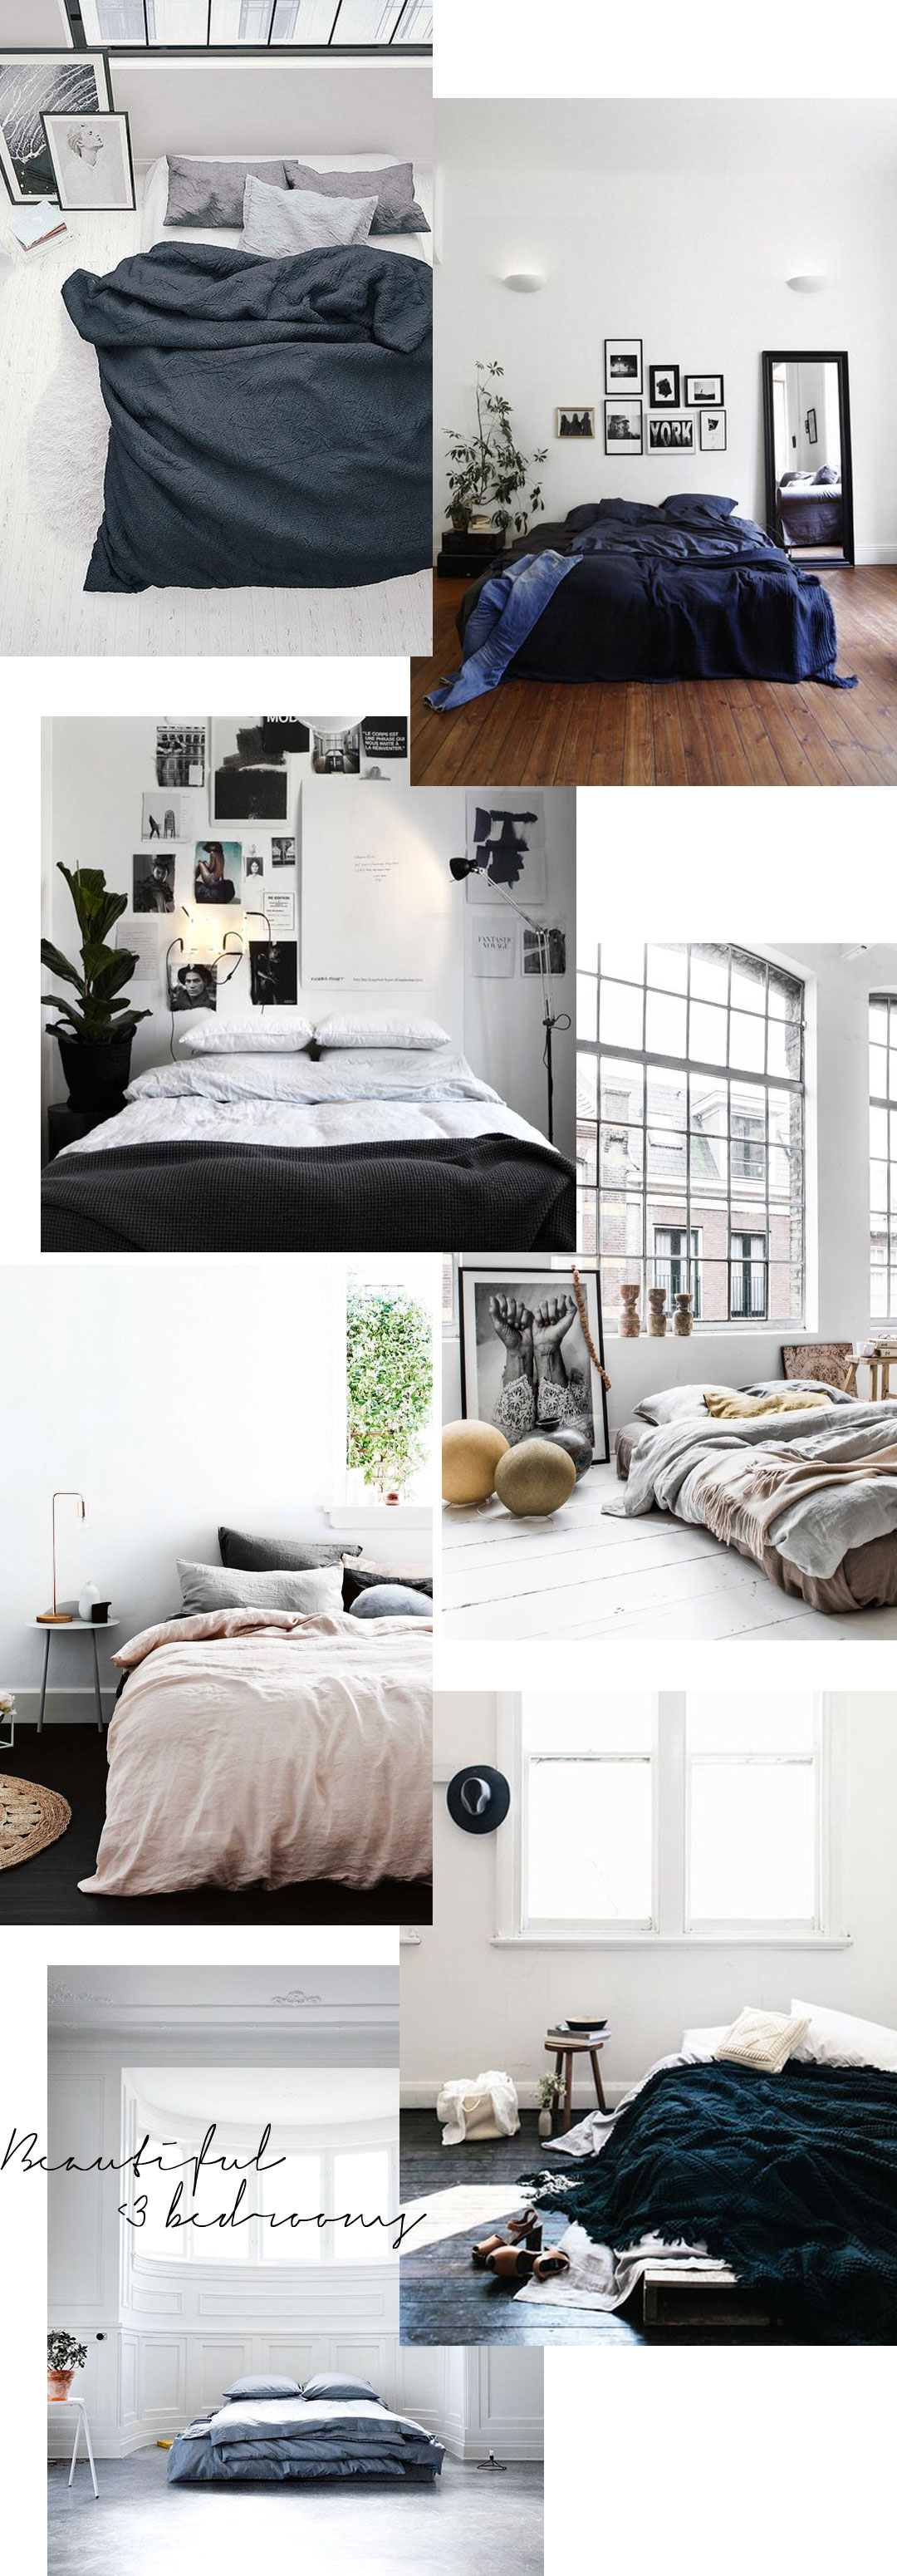 soophisticated_bedroominspiration